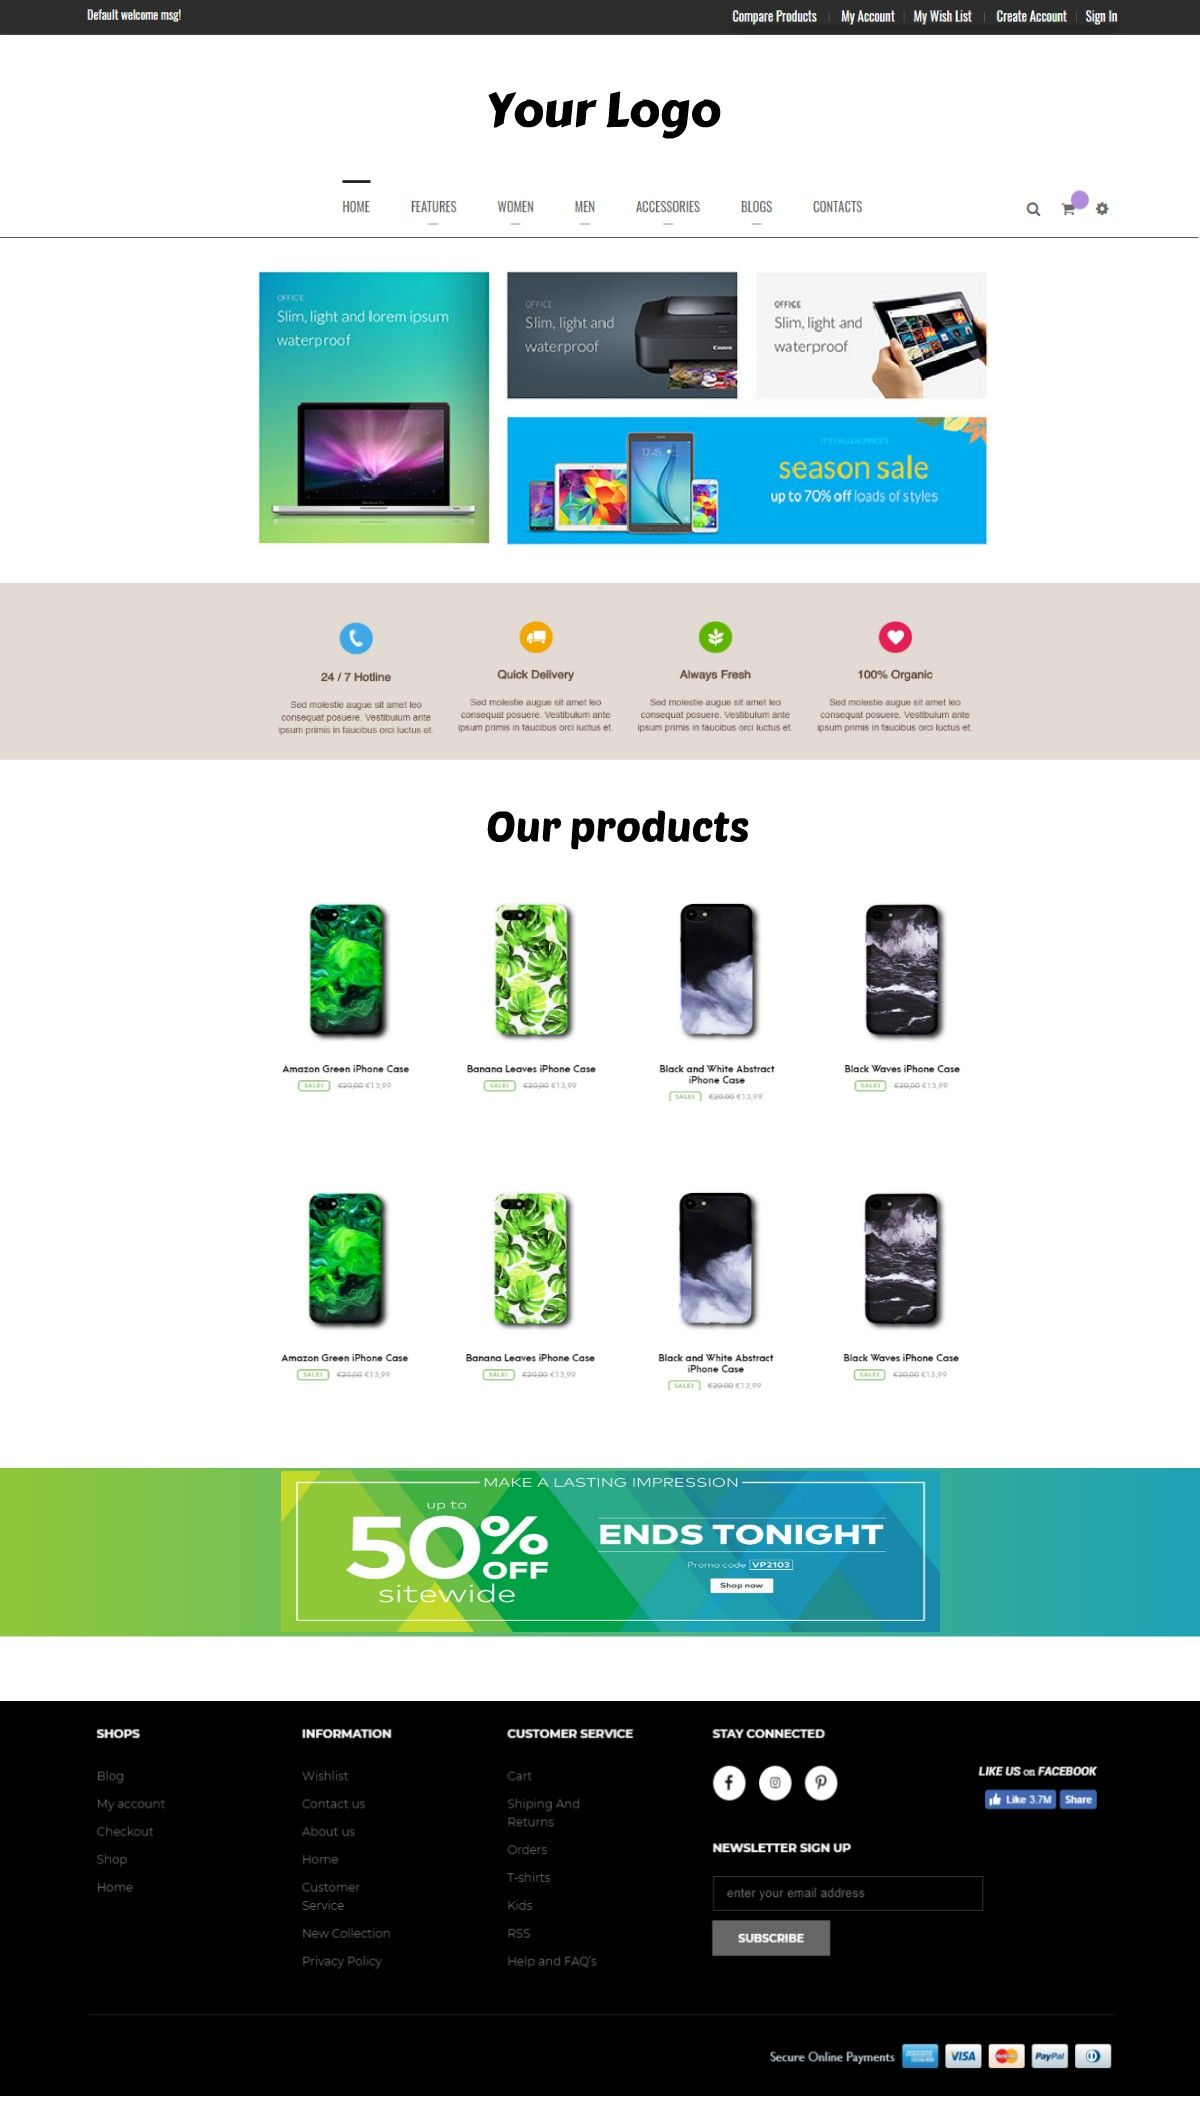 webshop layout example webshops from 800 assist4web com webshop